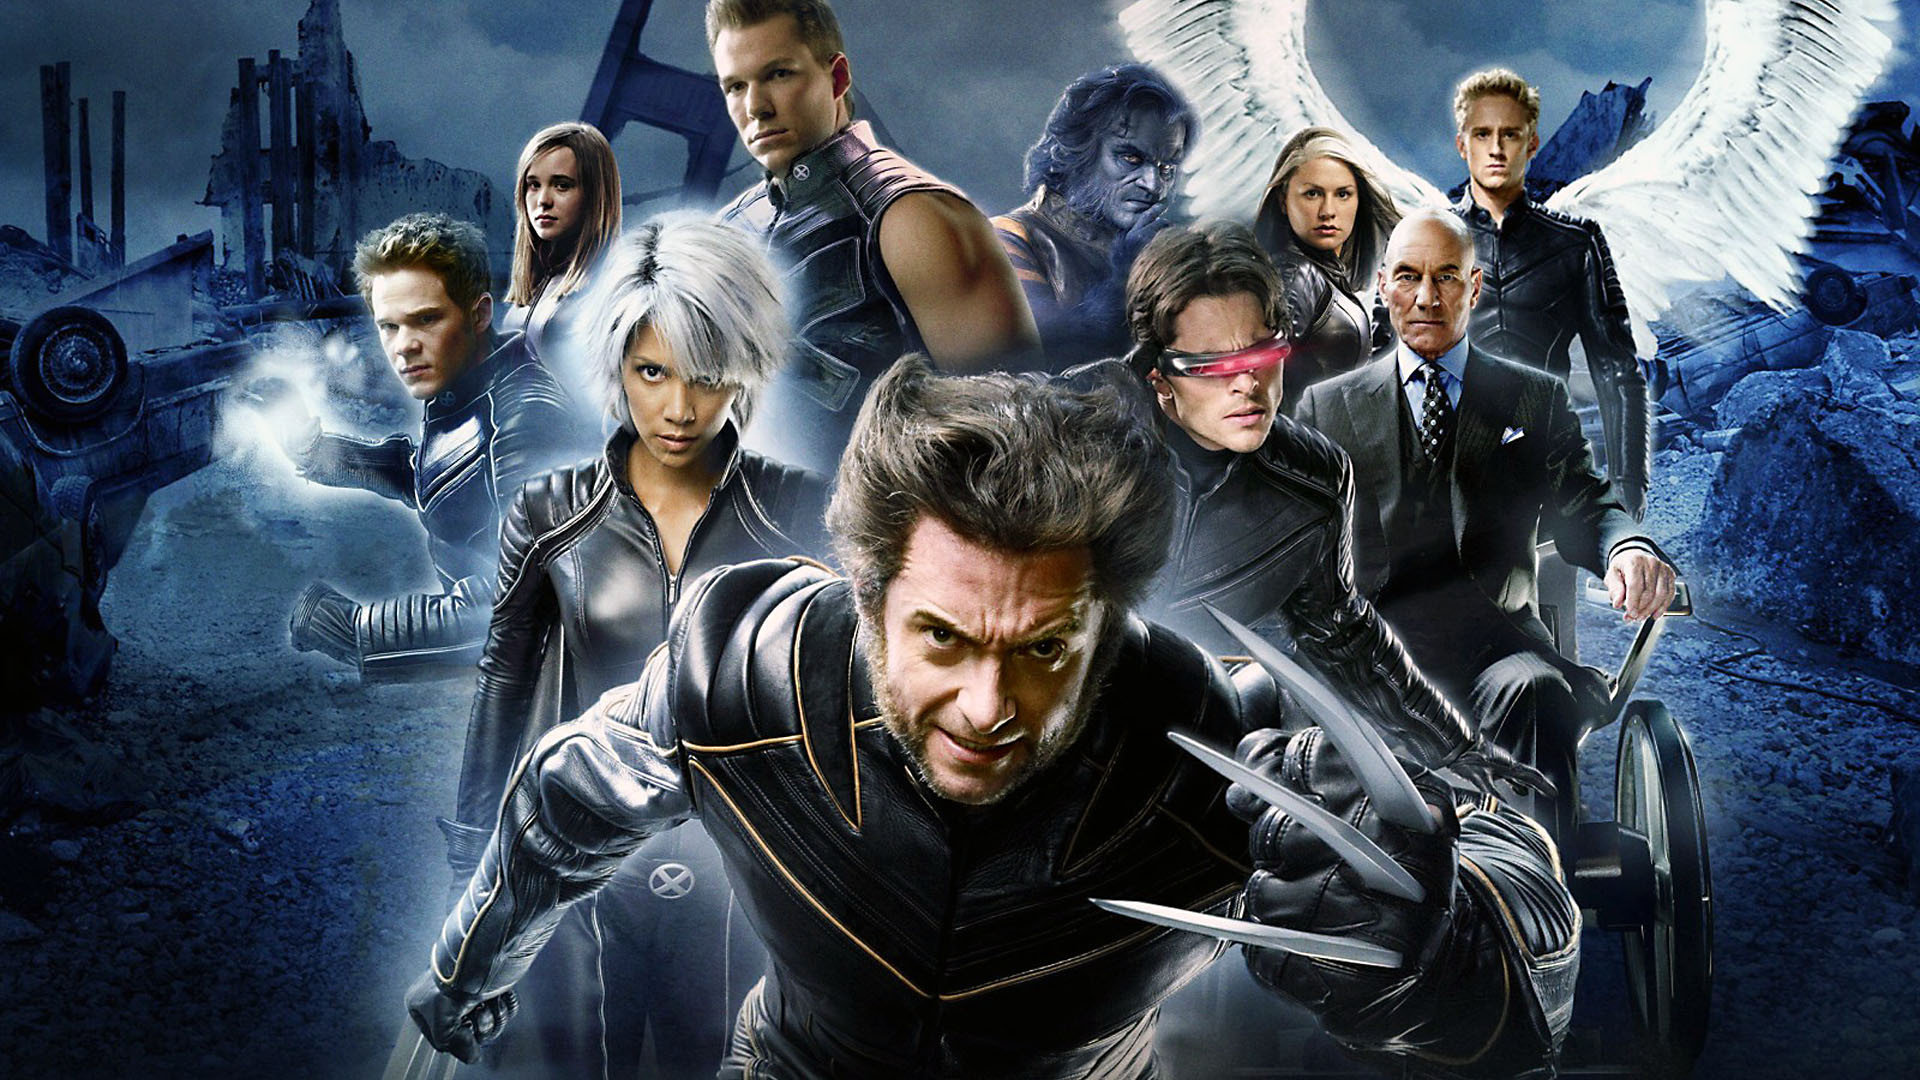 X men the last stand wallpapers in jpg format for free download.